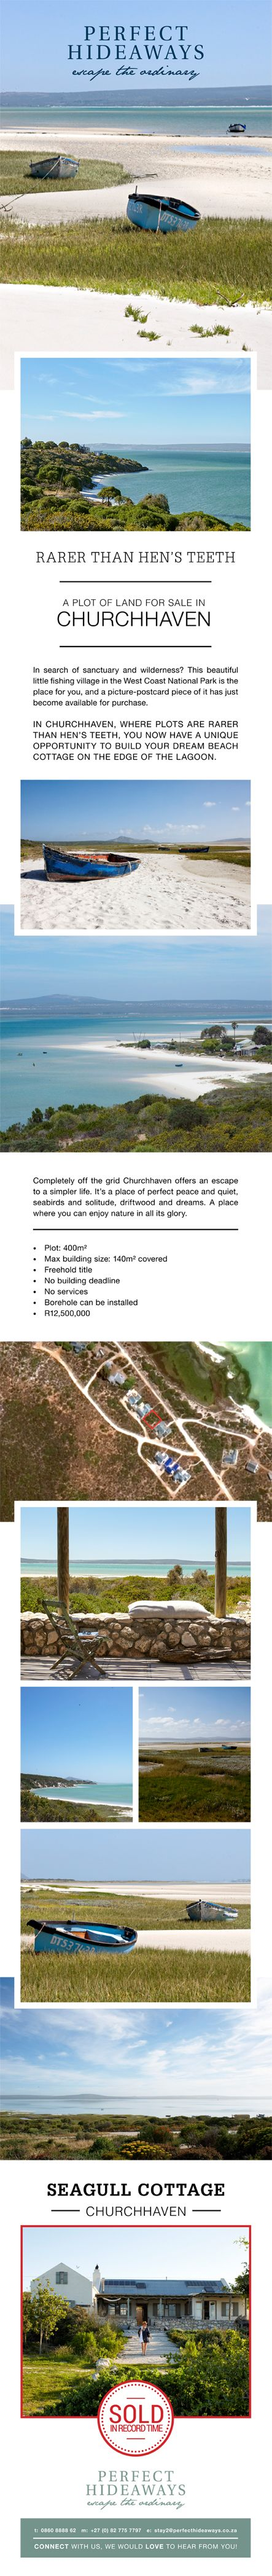 Picture-postcard piece of land has just become available for purchase in Churchhaven!